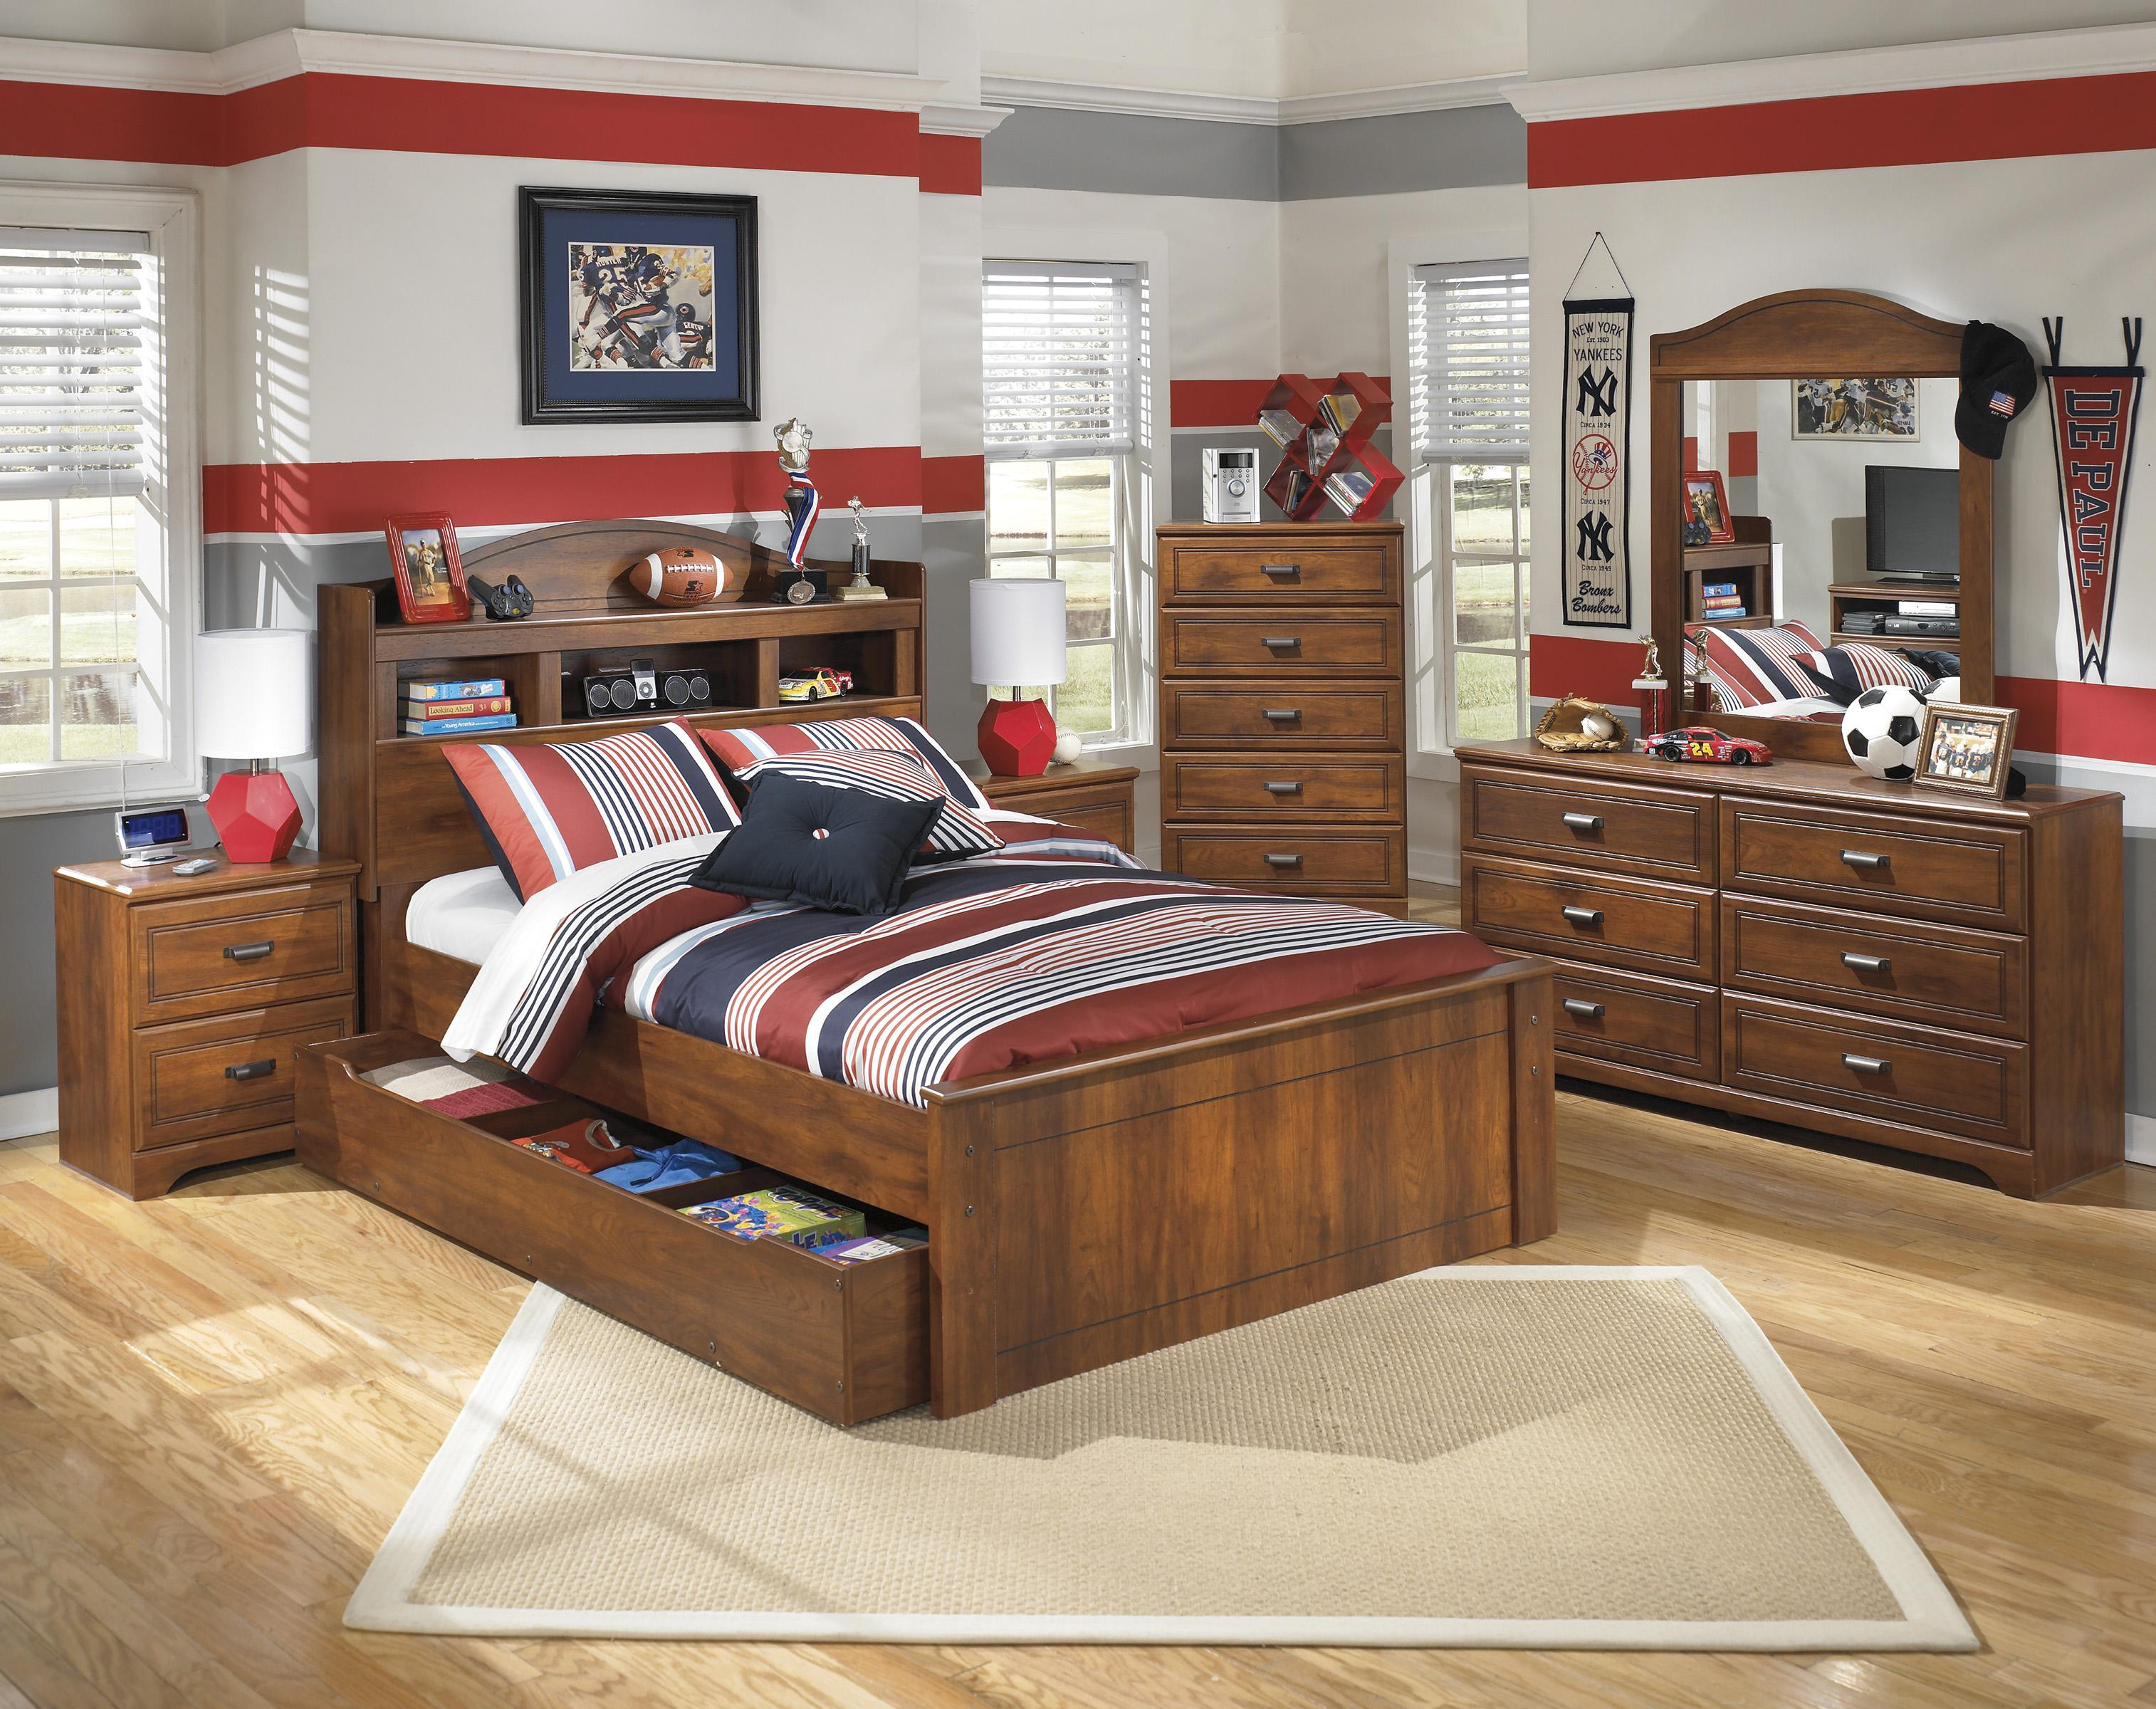 Signature Design by Ashley Barchan Full Bedroom Group - Item Number: B228 F Bedroom Group 6